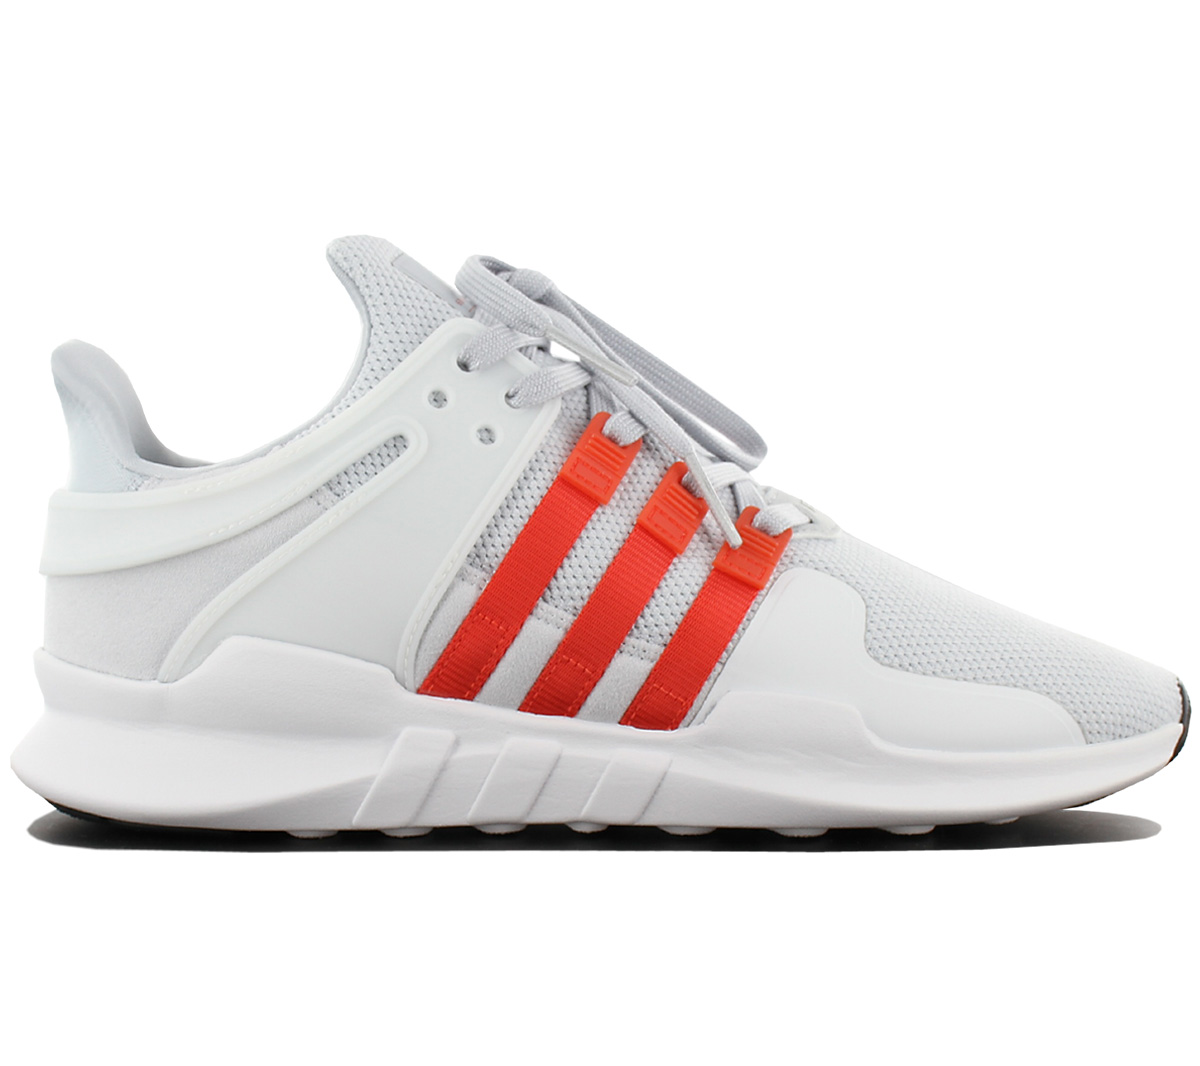 quality design 64f18 e264f Adidas Originals Eqt Equipment Support Adv Fashion Shoes Tra